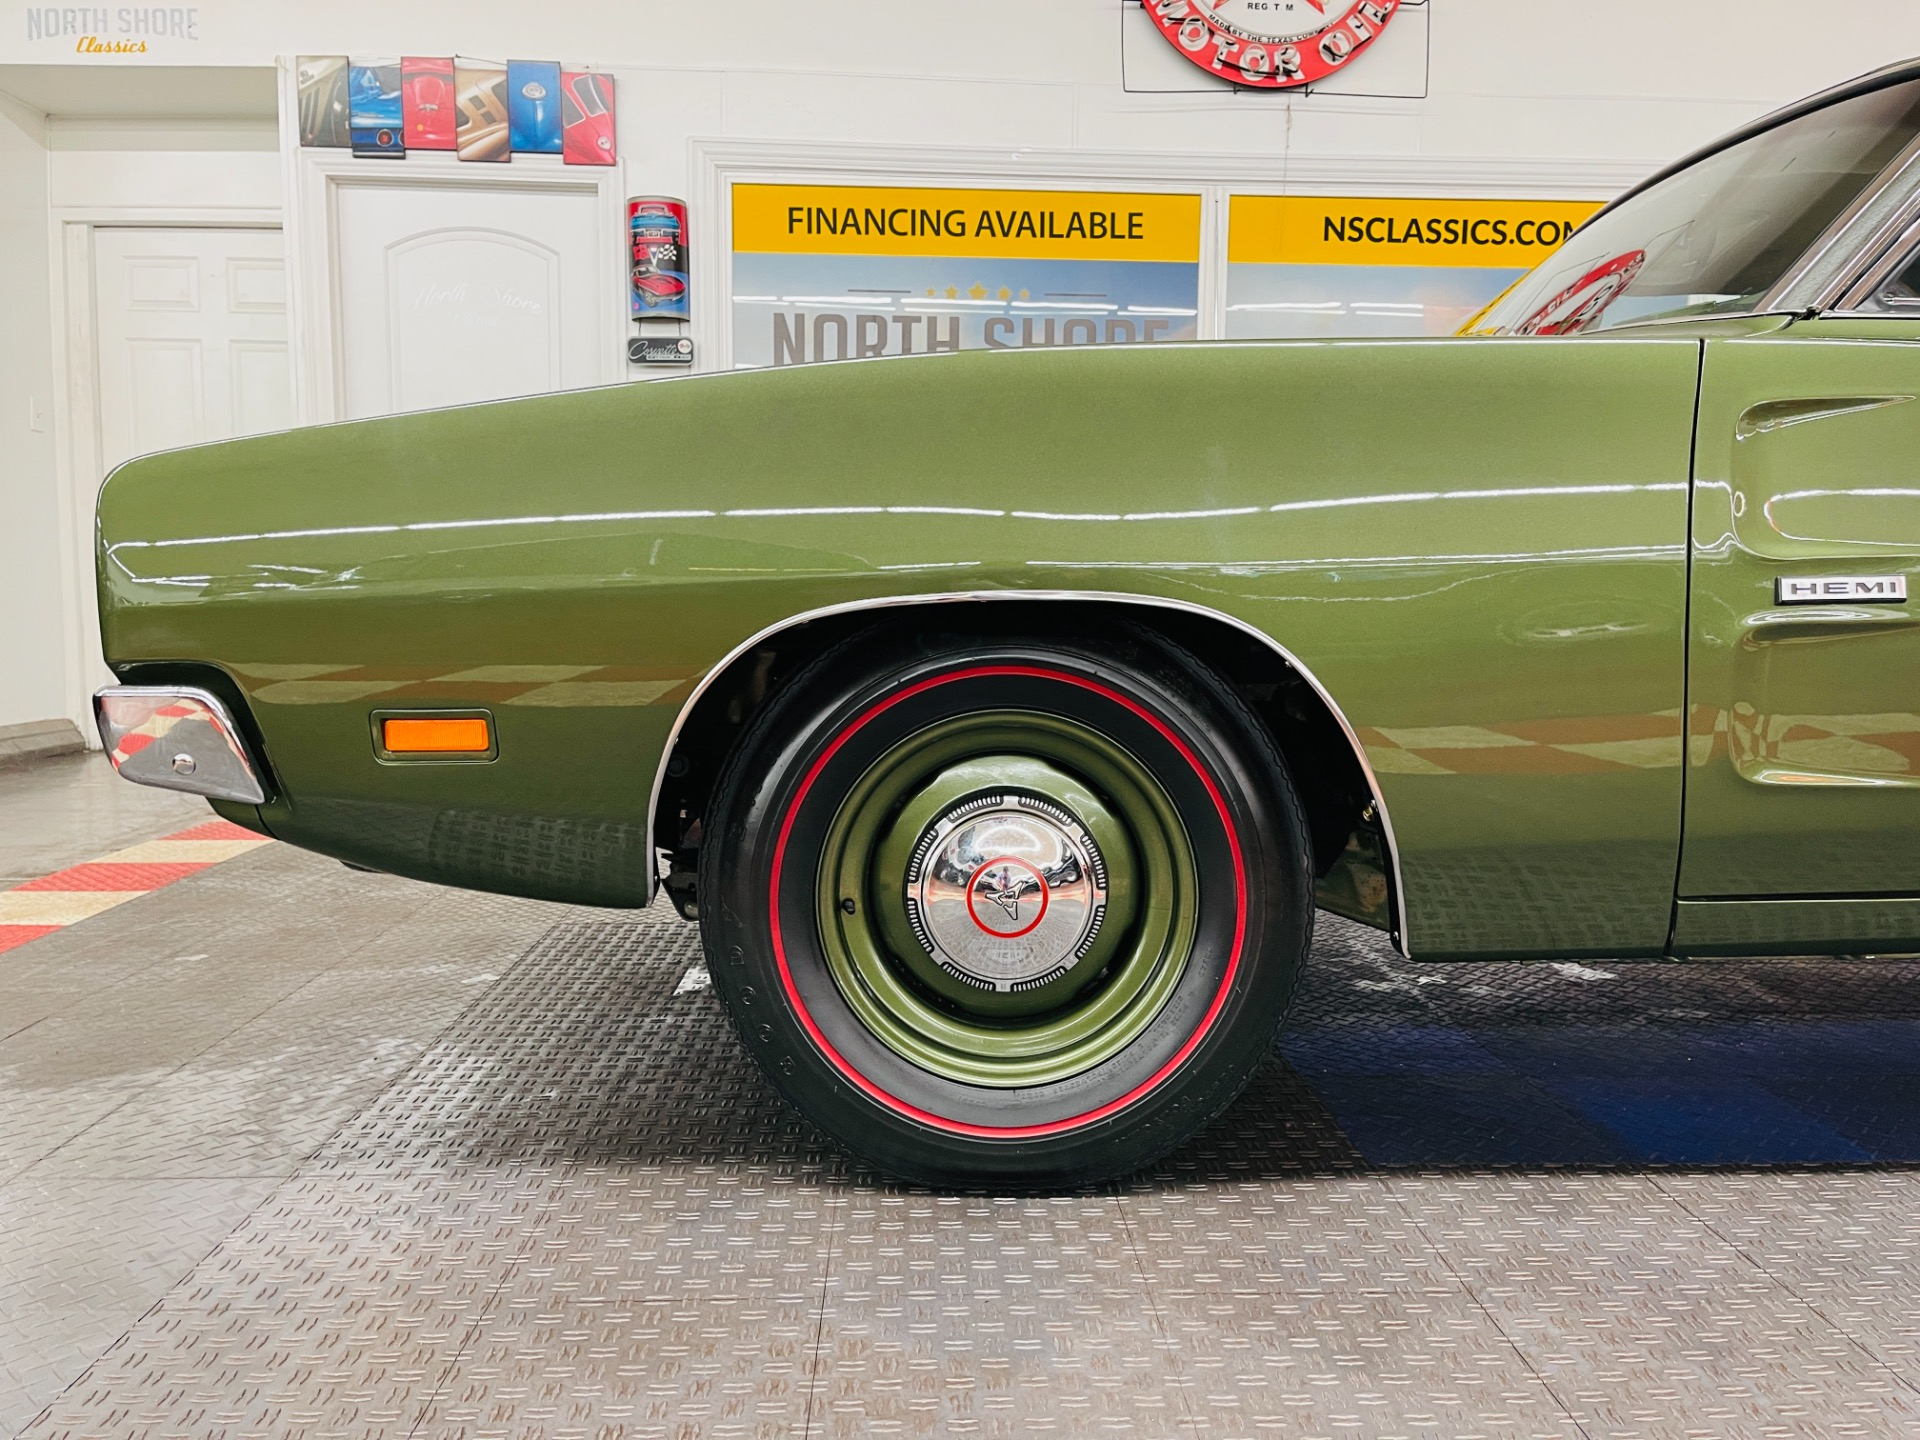 Used 1969 Dodge Charger - R/T - 426 HEMI - 4 SPEED MANUAL - CONCOURSE QUALITY - SEE VIDEO - | Mundelein, IL